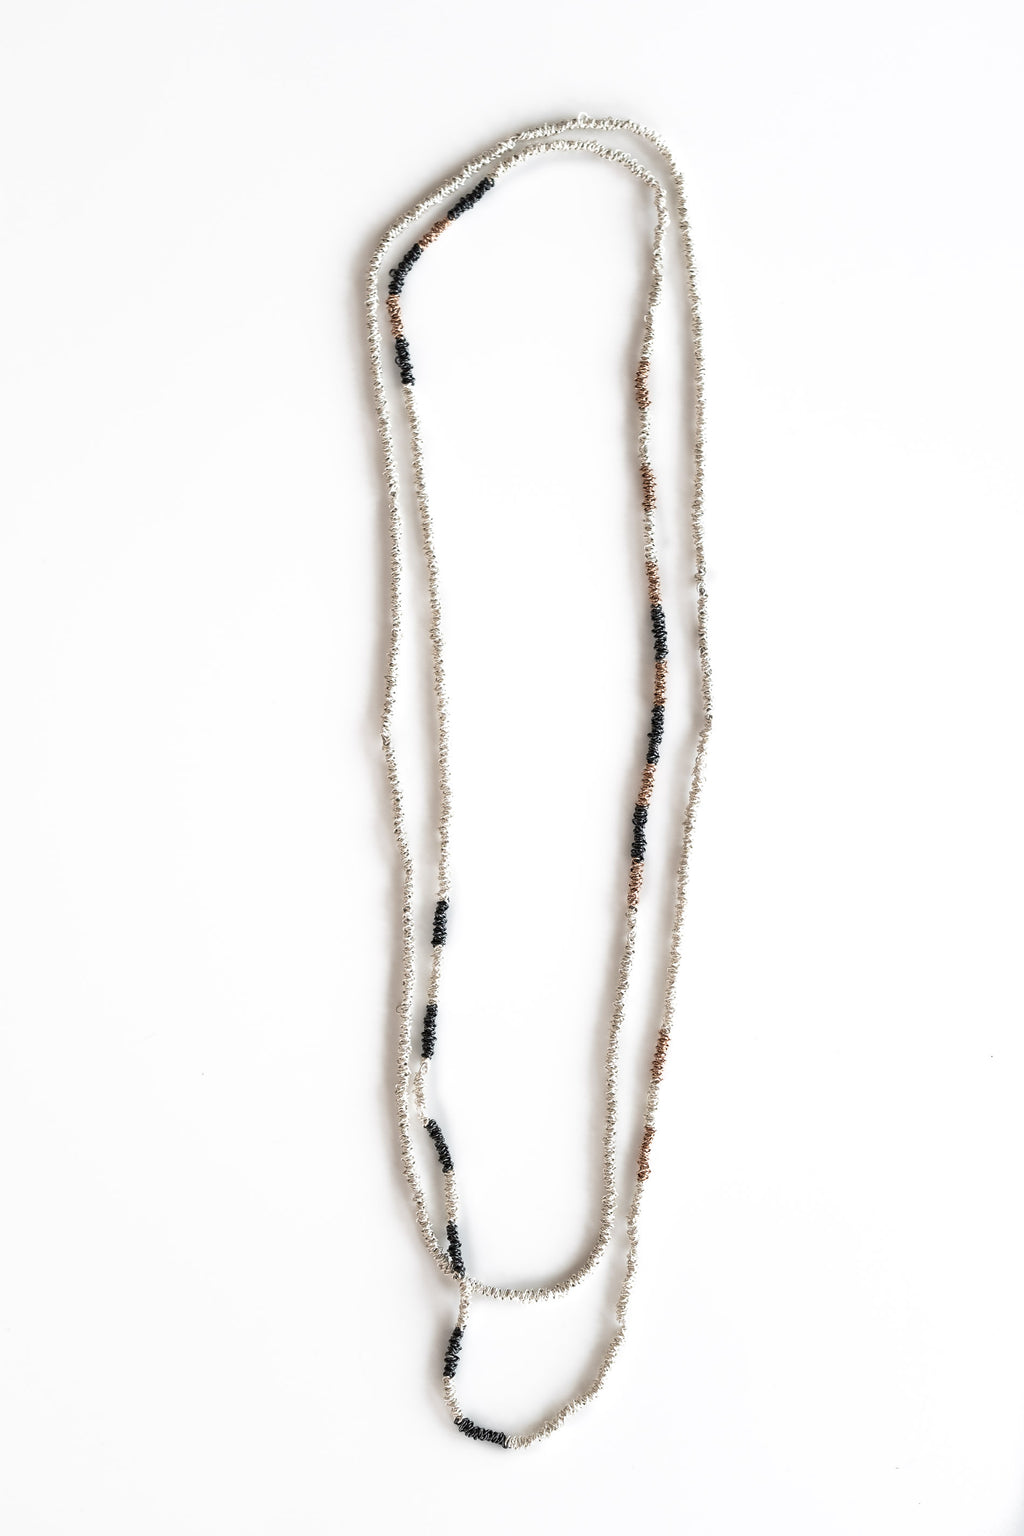 SINGLE STRAND SILVER AND ROSE GOLD PLATED NECKLACE